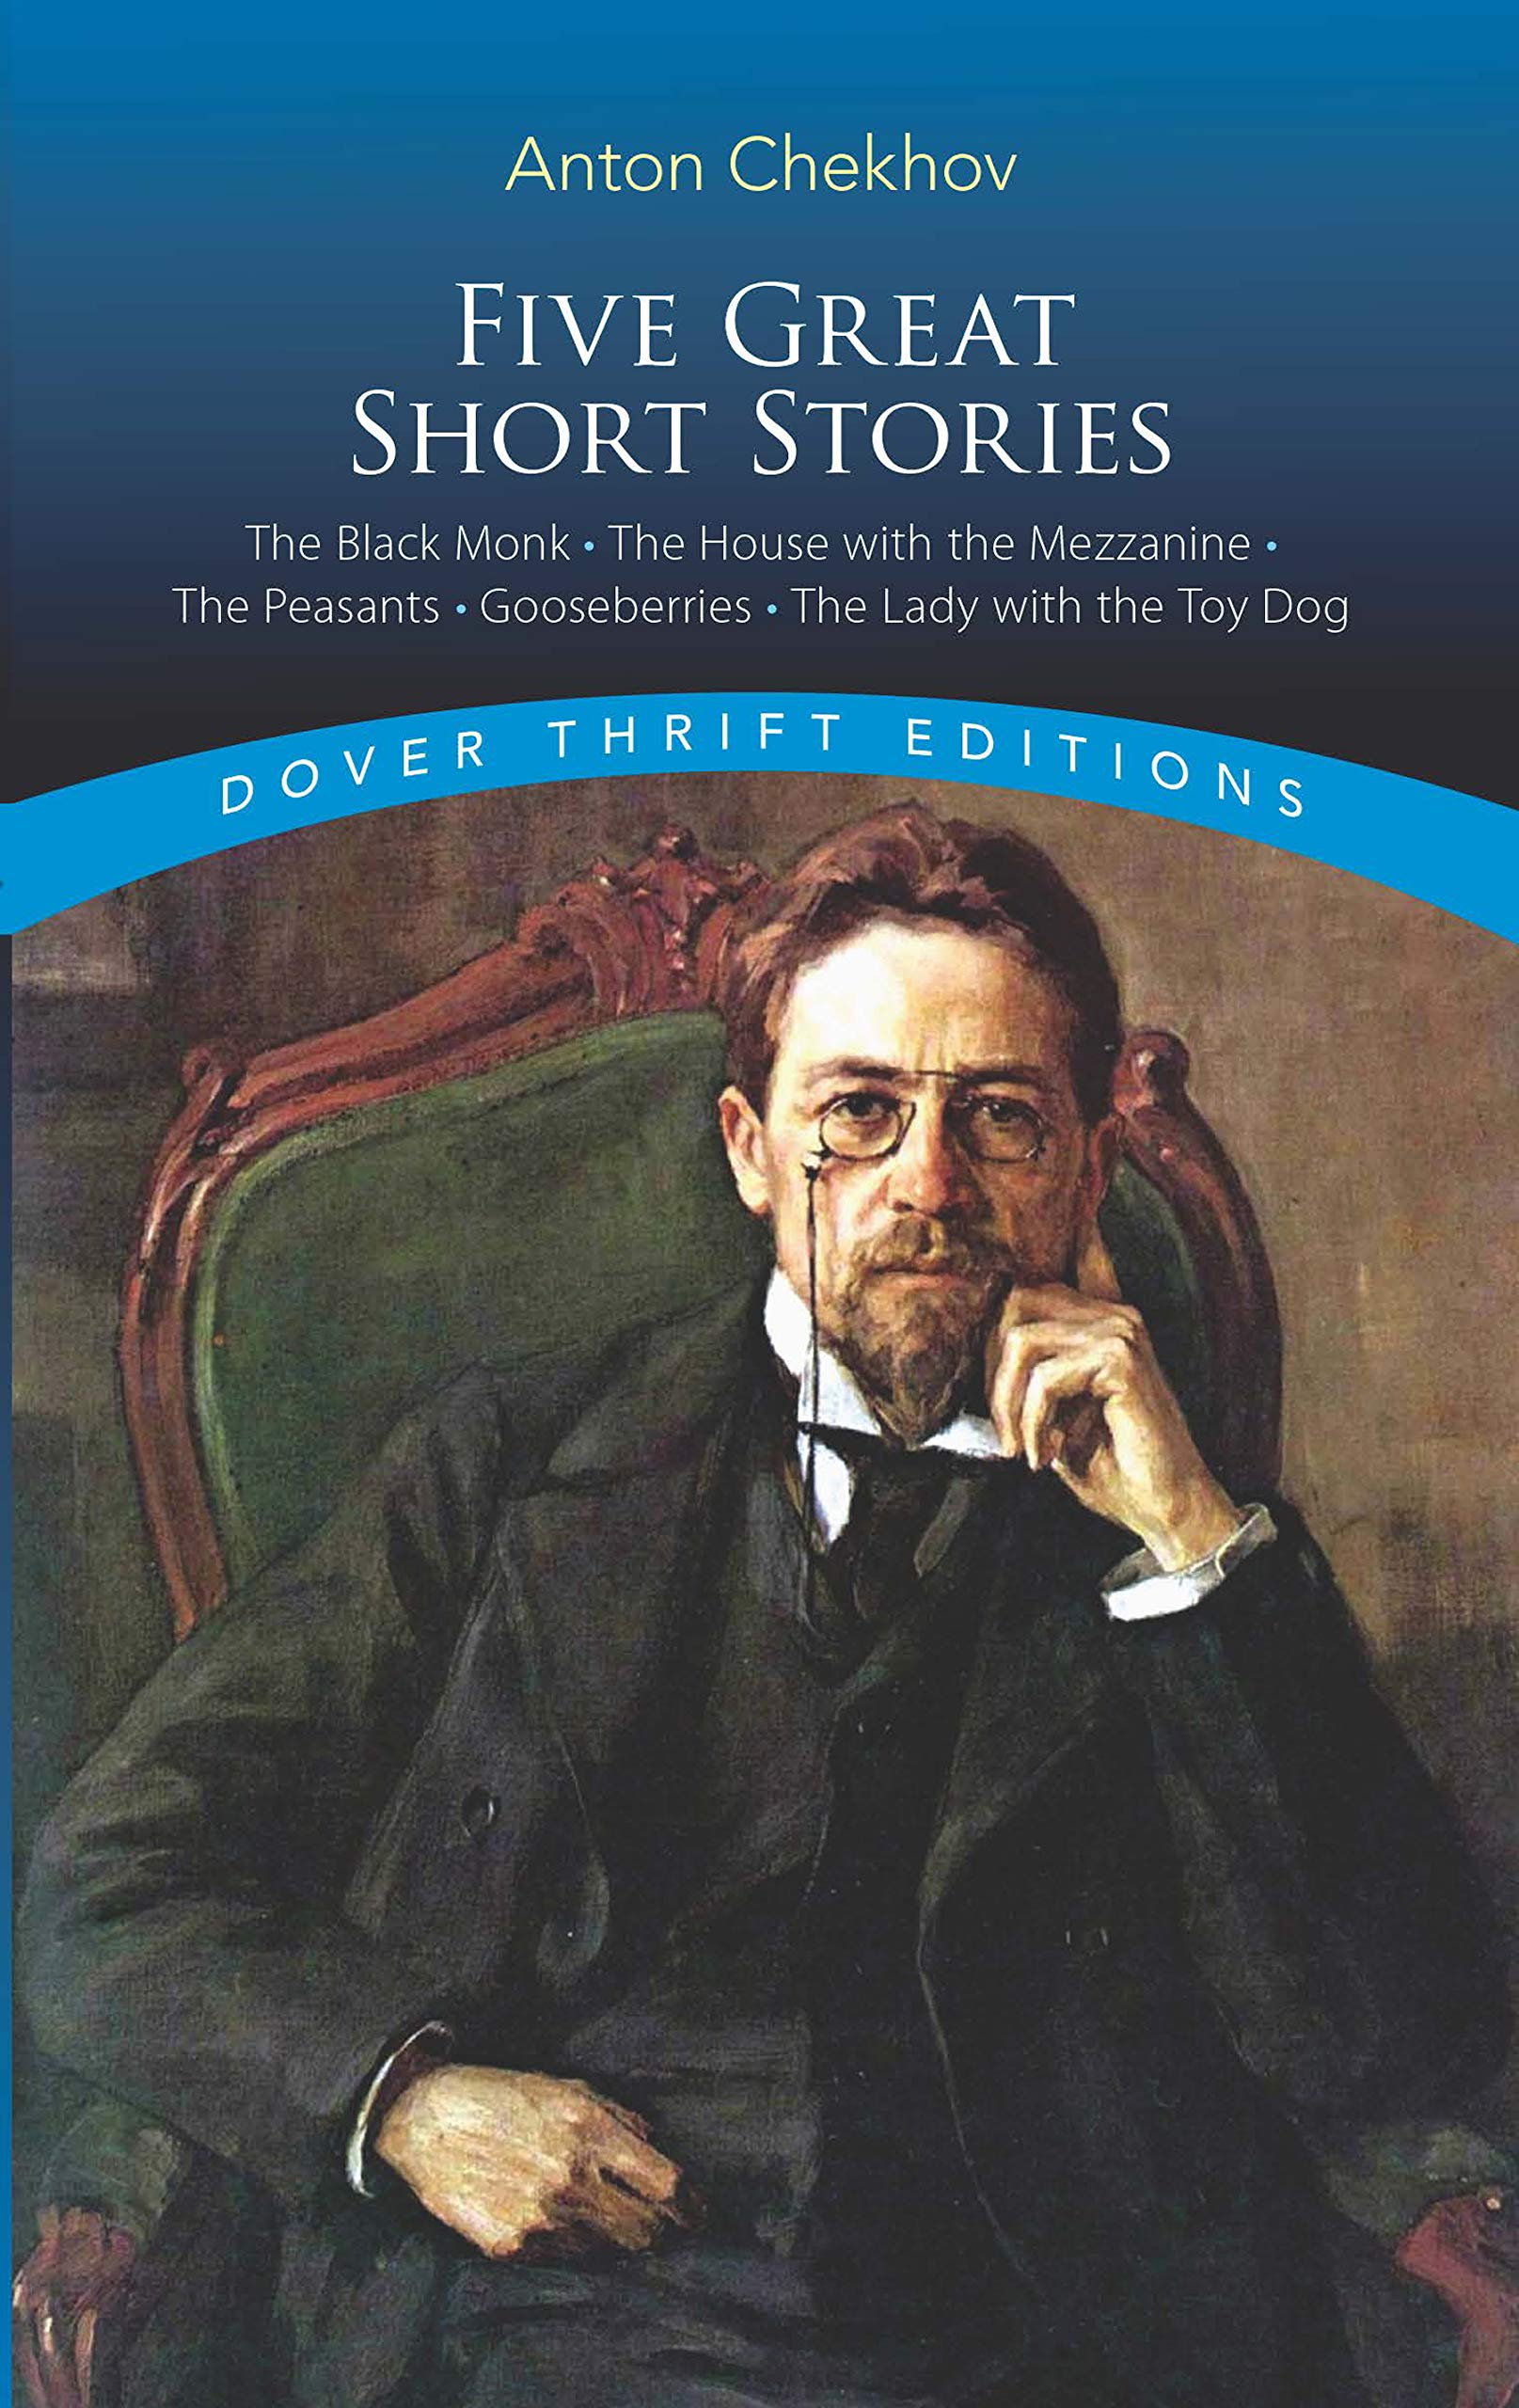 Five Great Short Stories (Dover Thrift Editions)